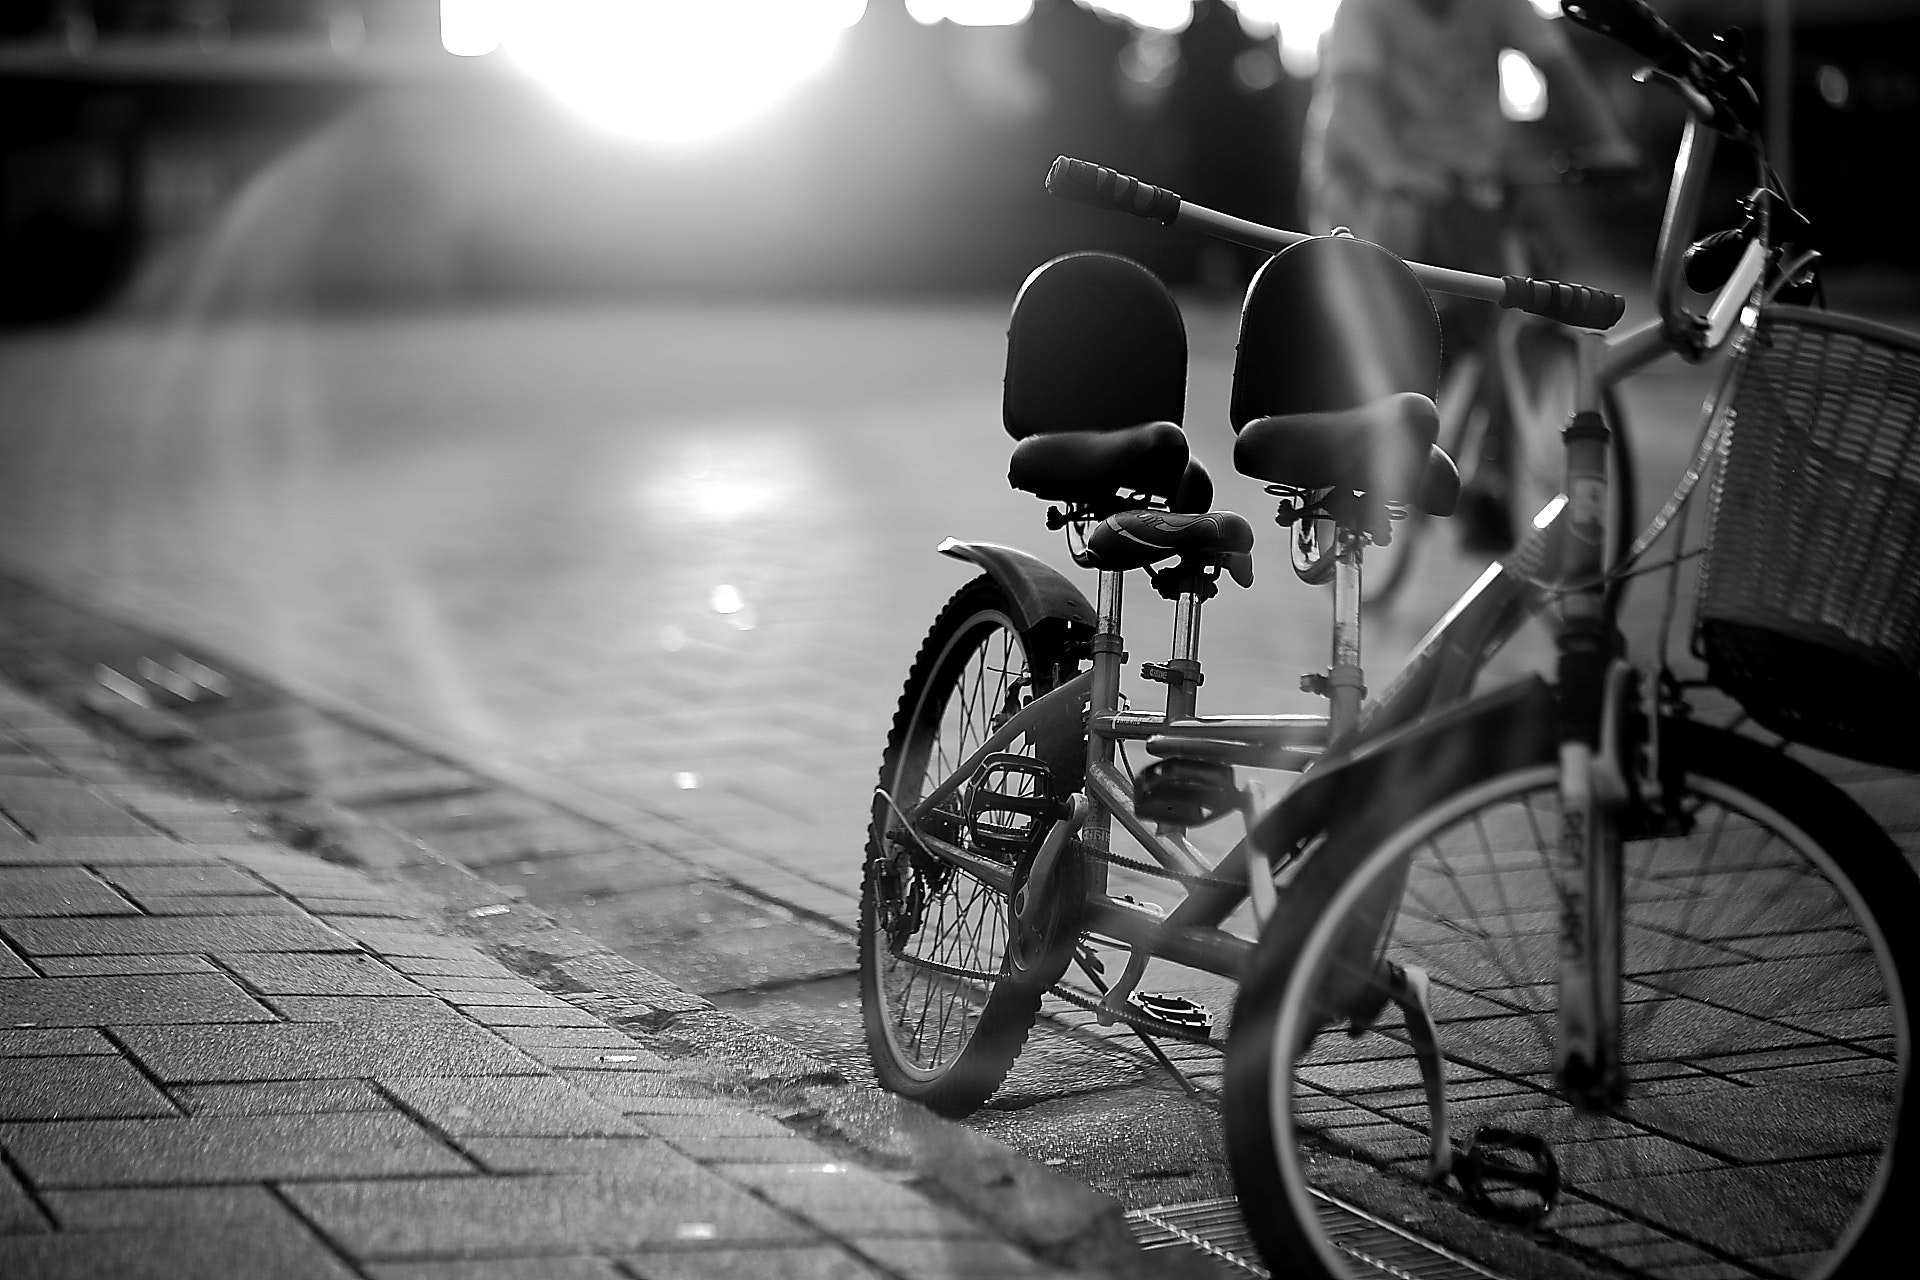 Grayscale Photography of Bicycle · Free Stock Photo